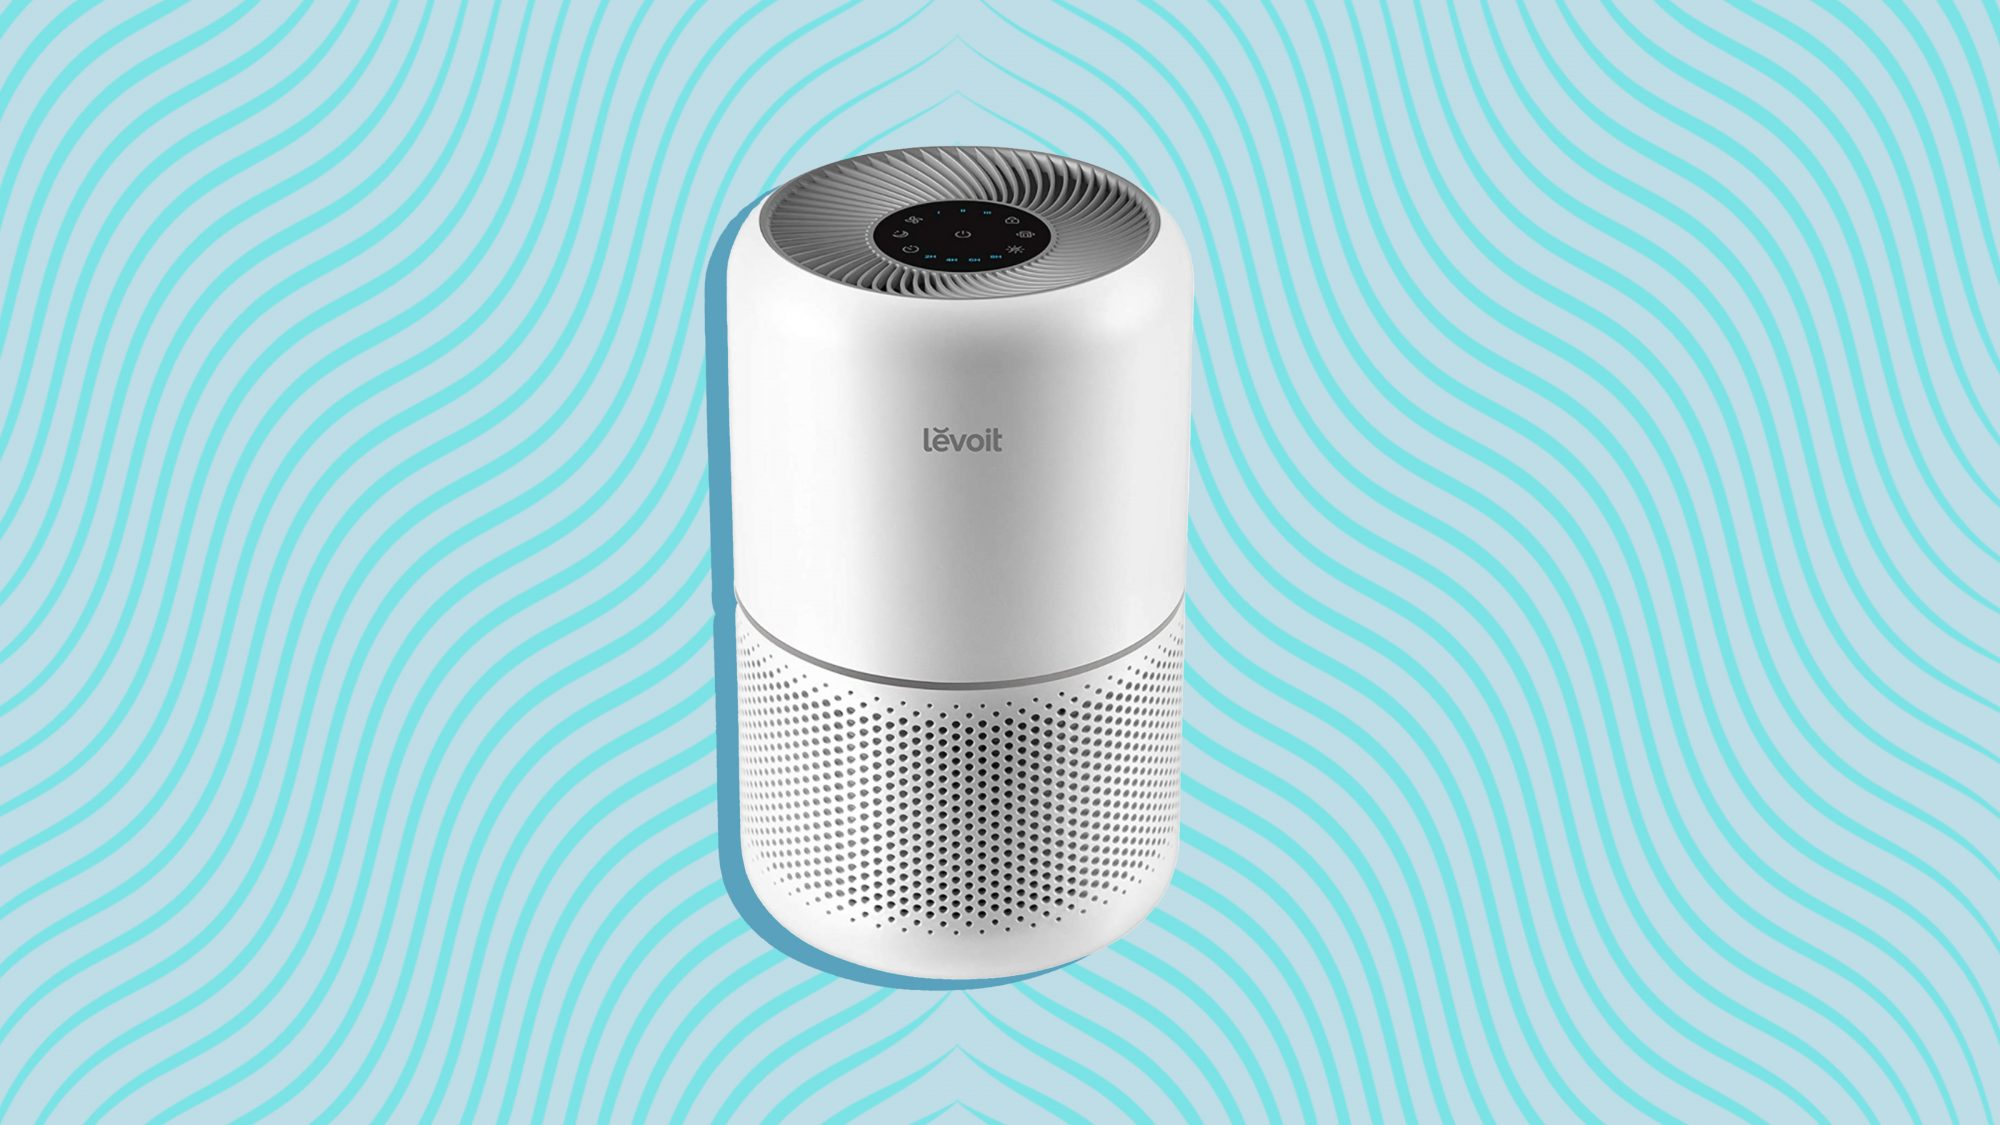 Amazon's #1 Best-Selling Air Purifier Is Less Than $100 Thanks to a Rare Sale